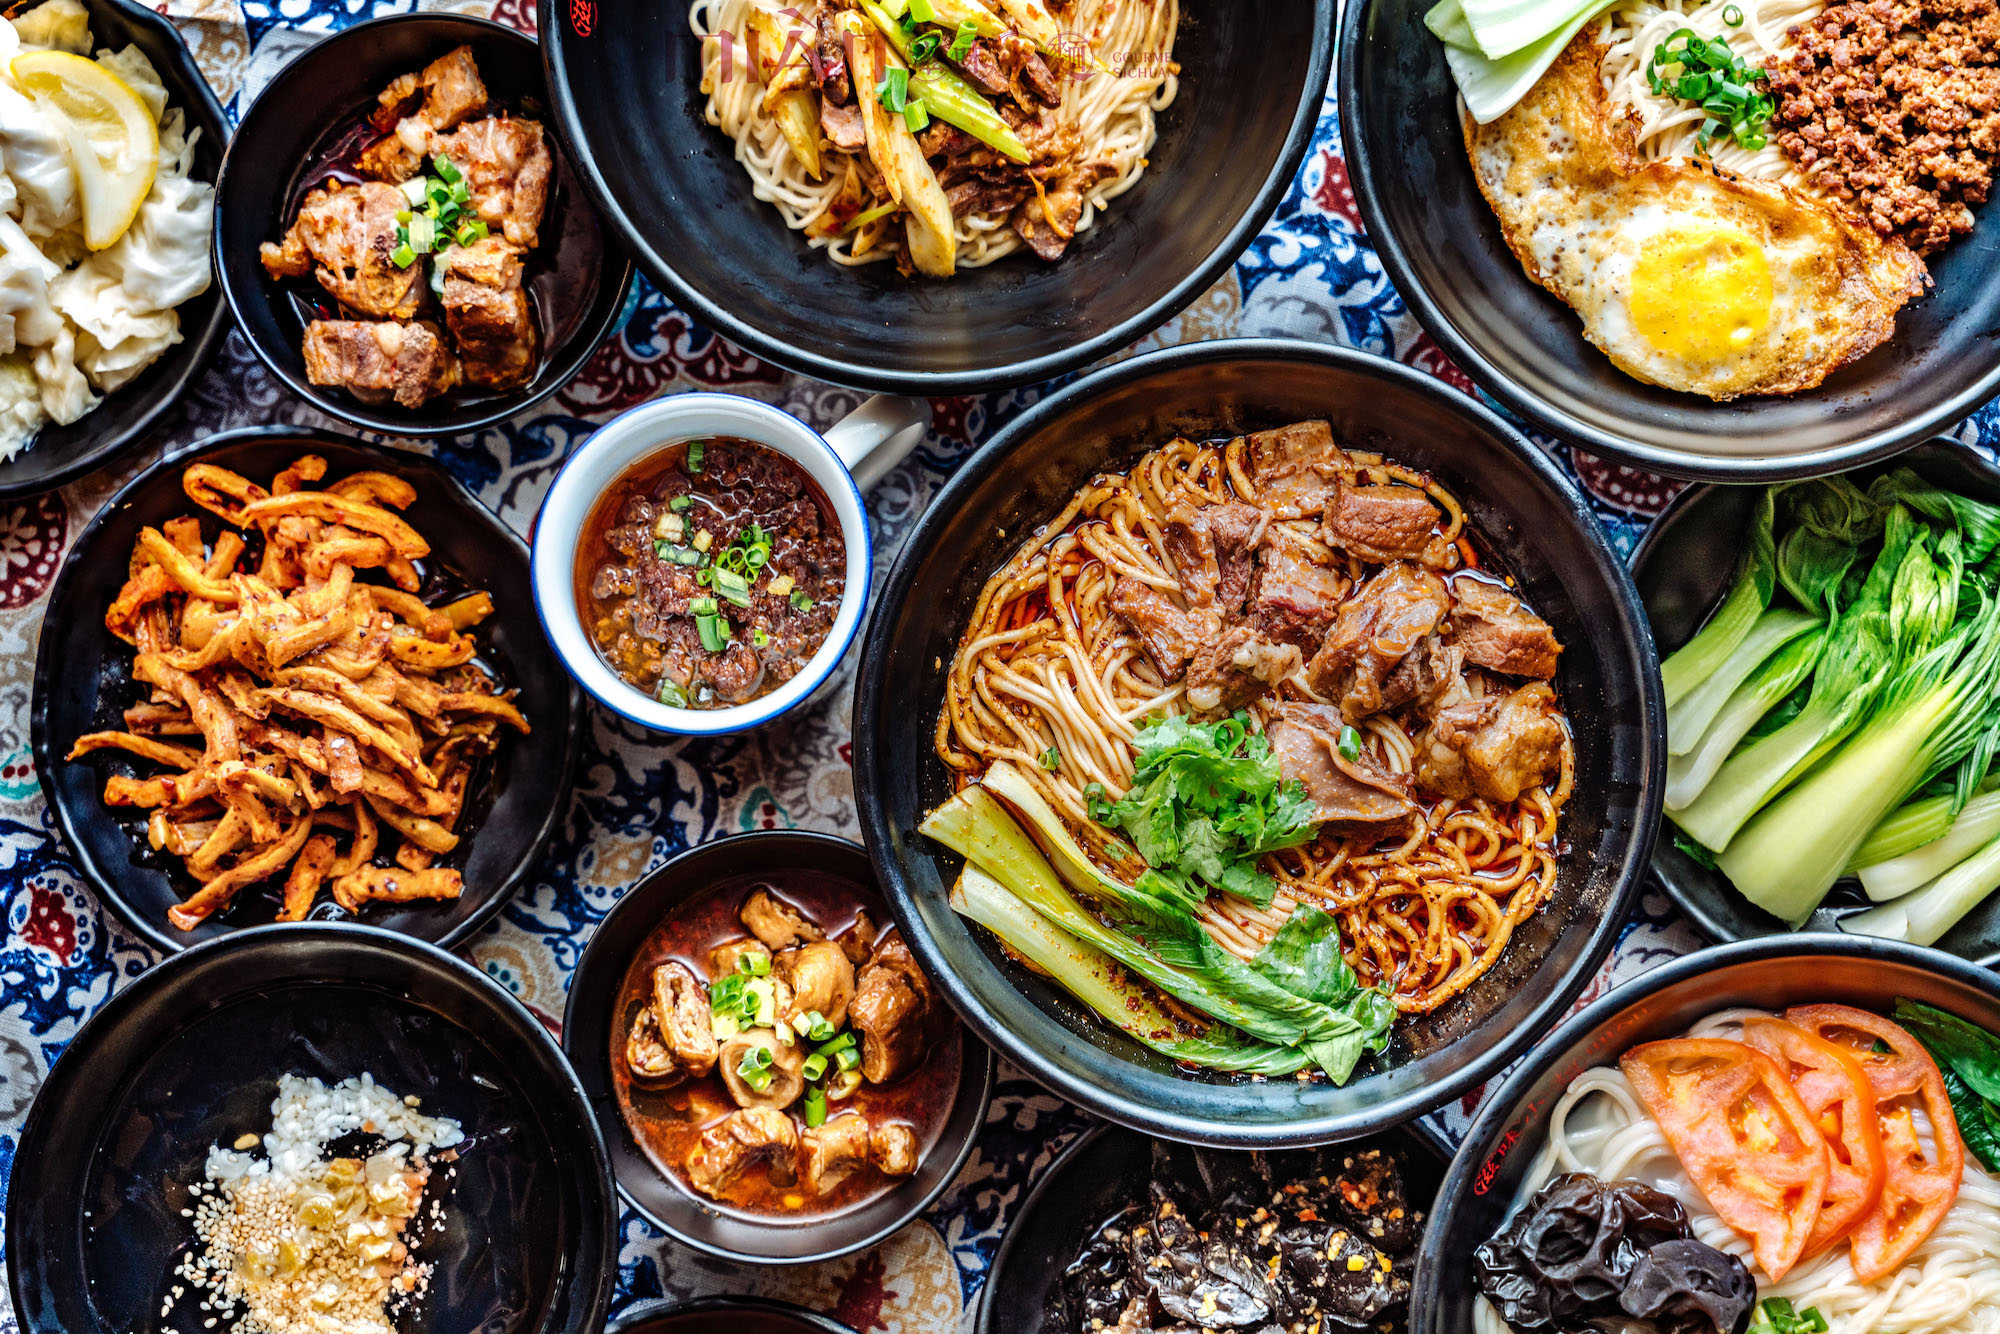 An overhead look at black bowls filled with noodles and other saucy items.